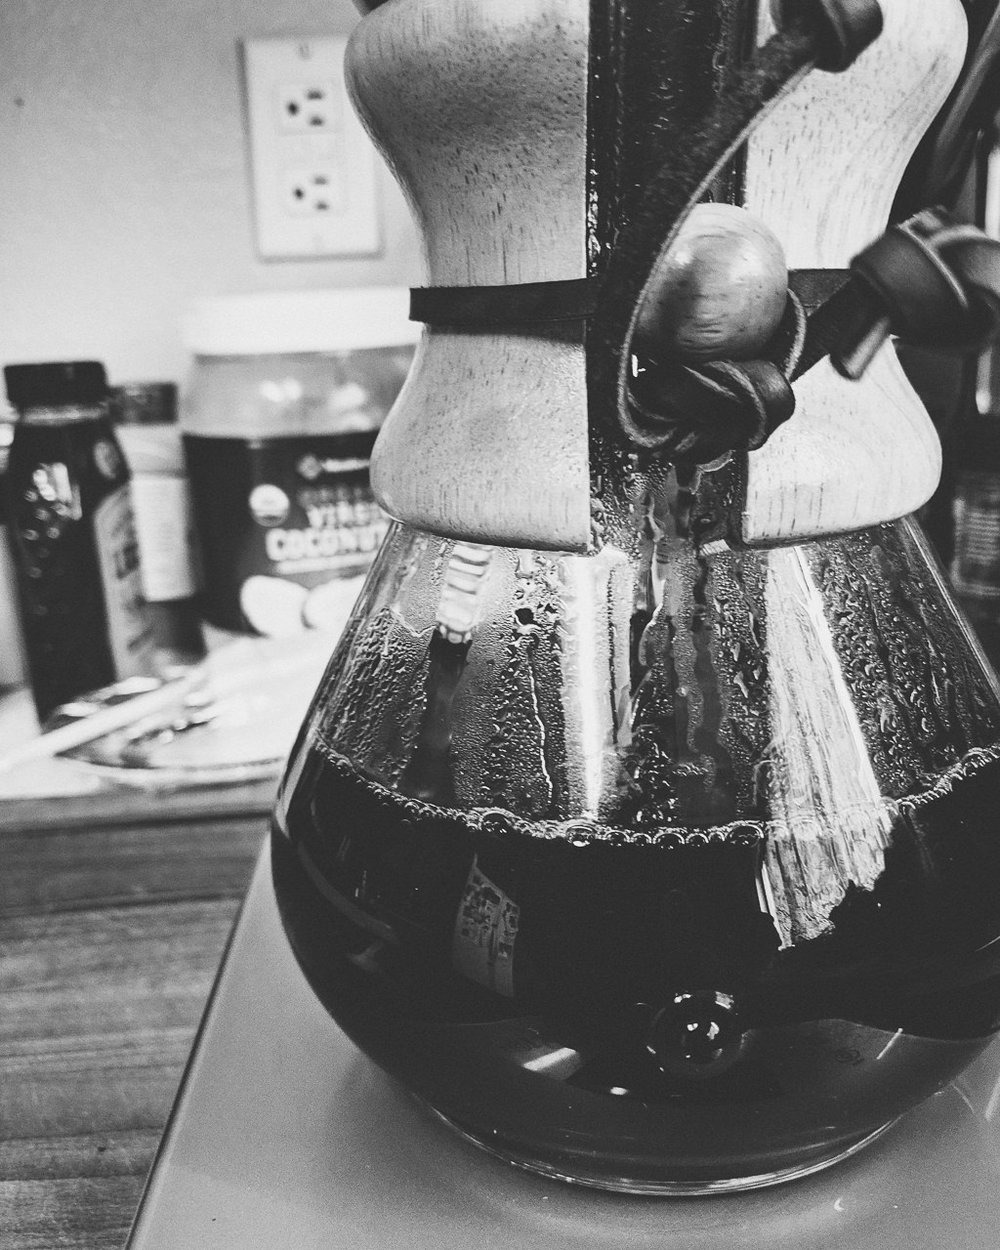 Day 90- 365 Day B&W Photo Challenge - Chemex Pour Over is ready for pouring - Google Pixel 3, Moment Tele 58mm lens, VSCO with x3 preset